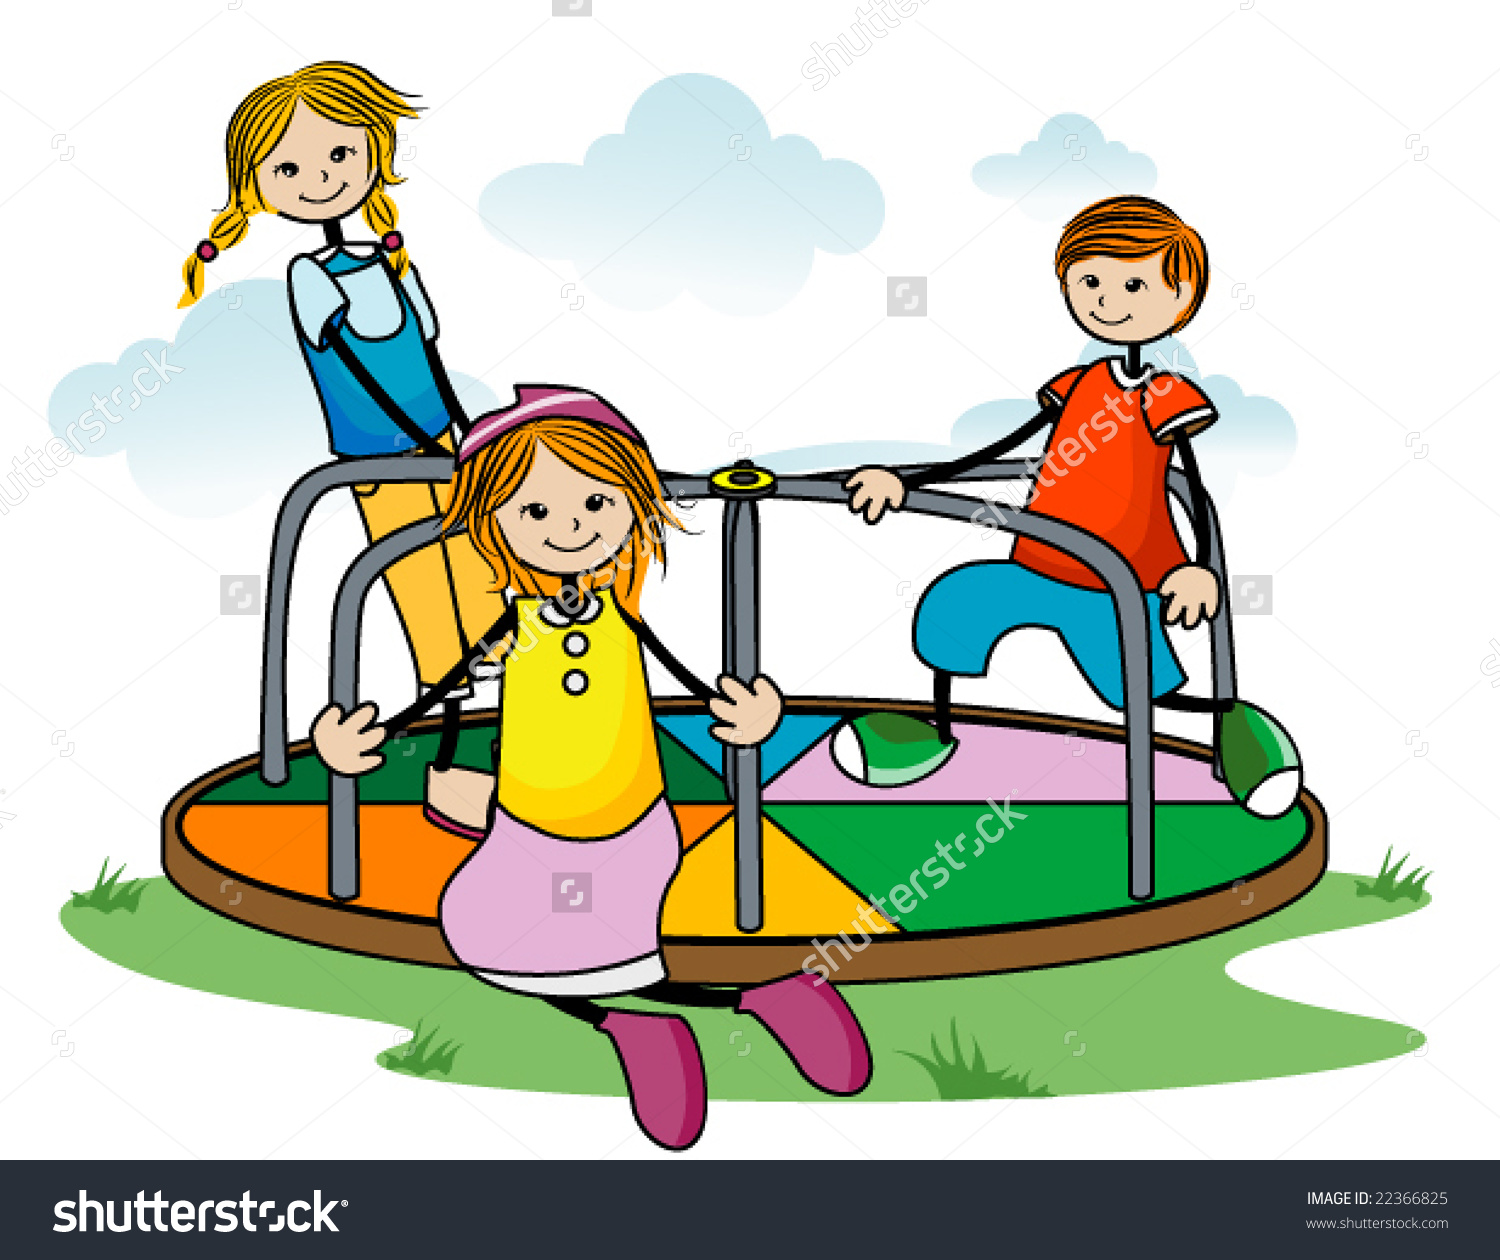 Kids On Roundabout Vector Stock Vector 22366825.